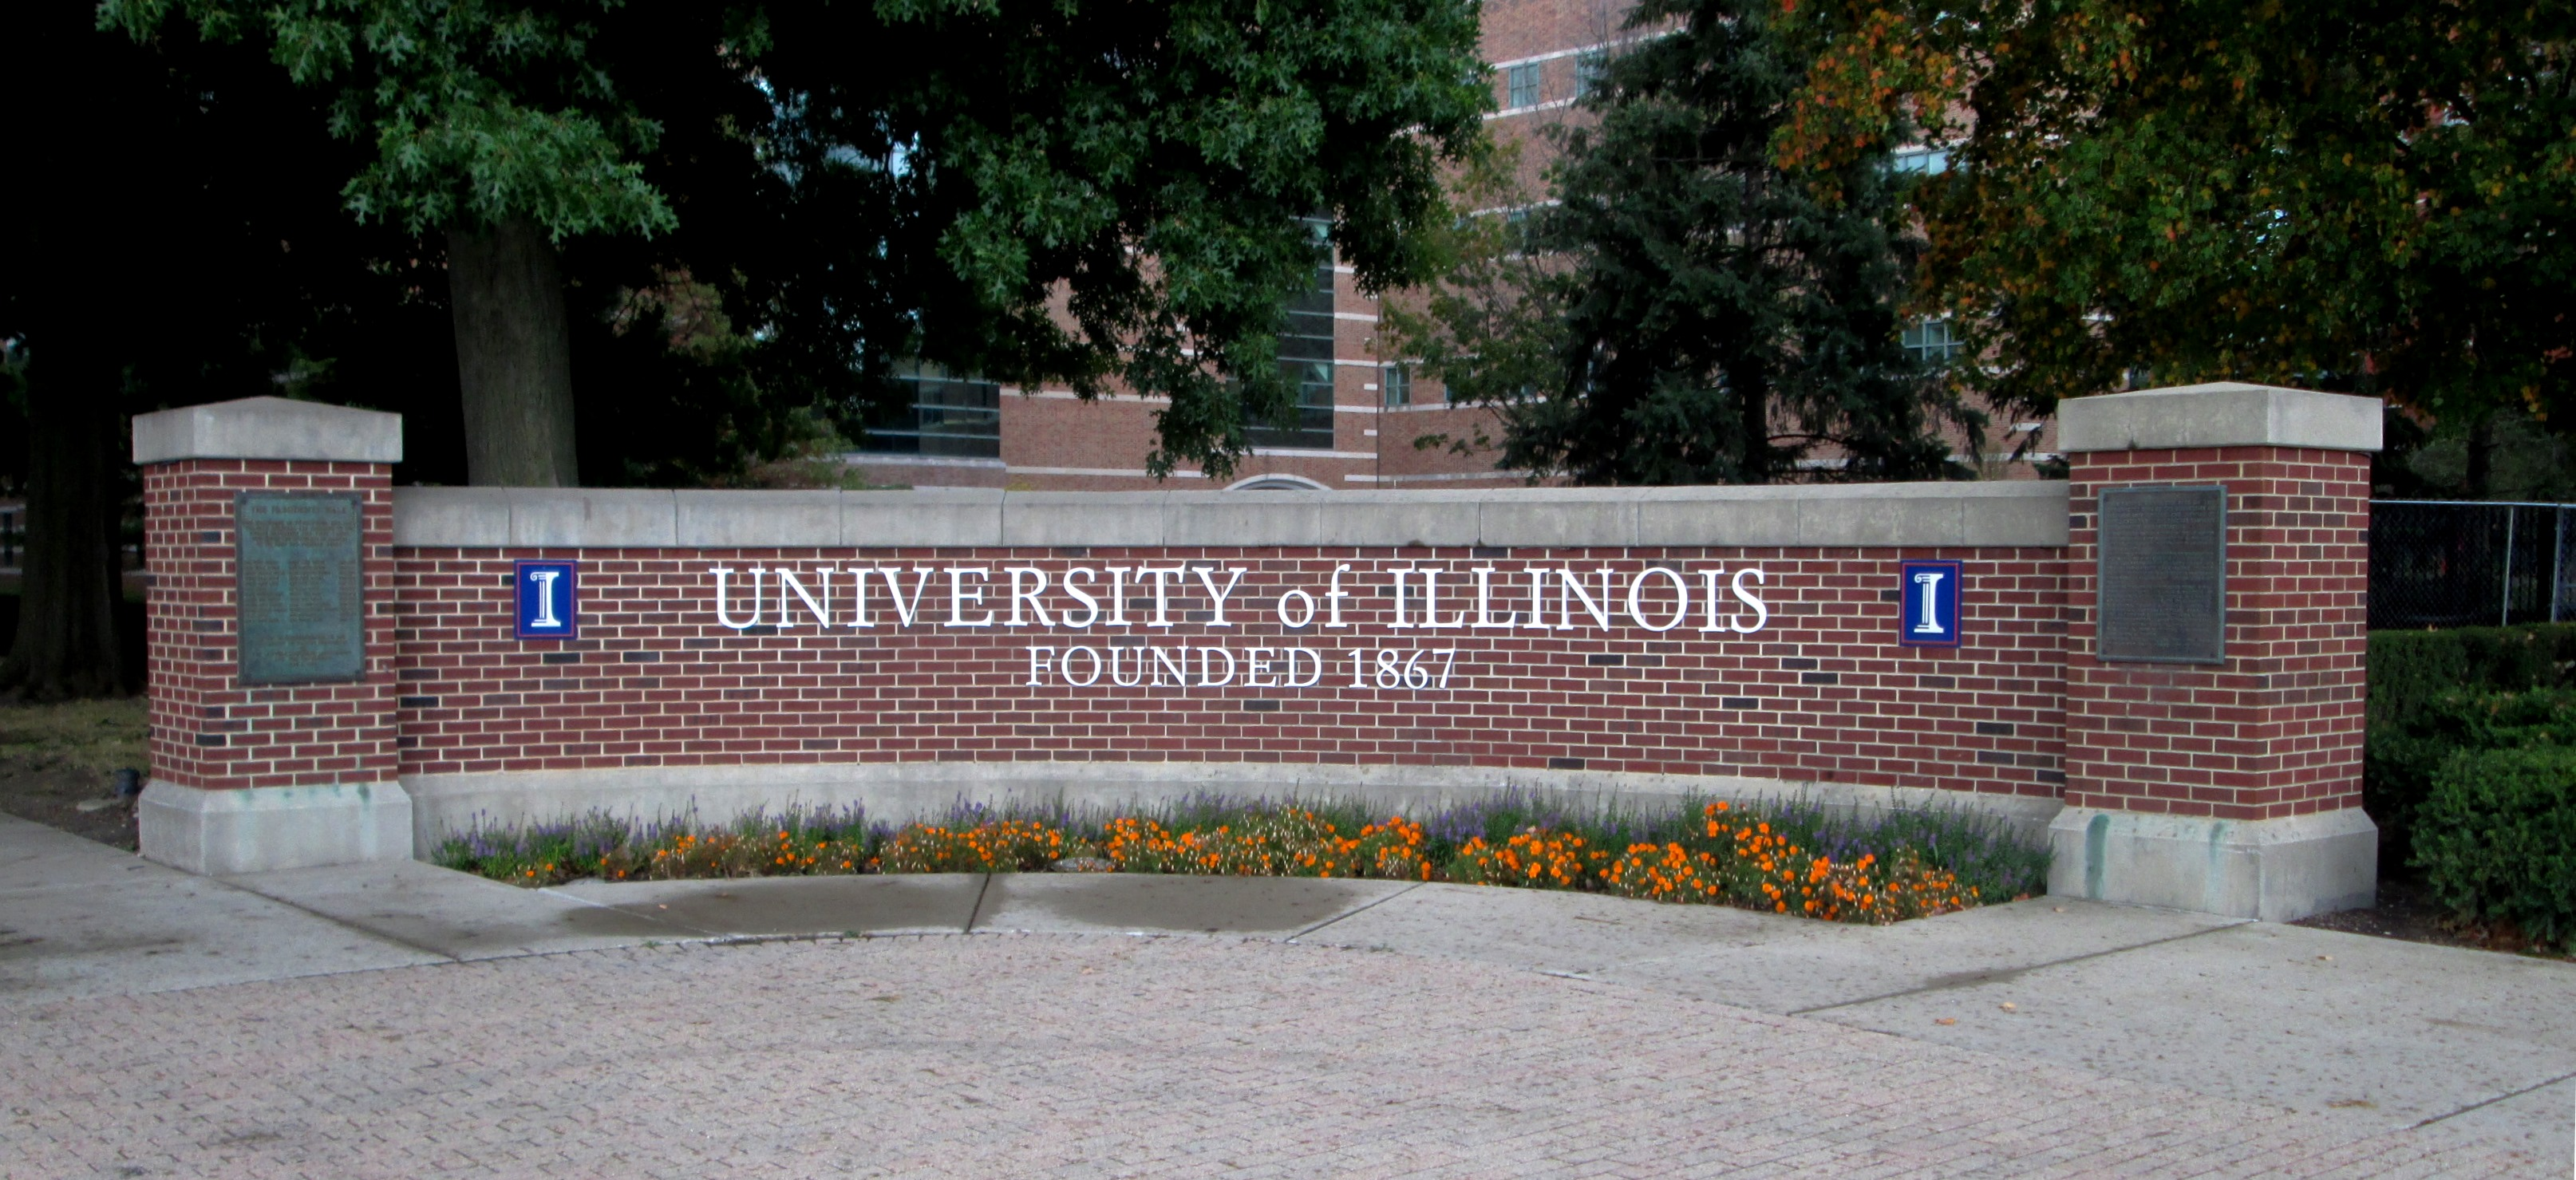 Campus entrance marker at Wright Street and University Avenue University of Illinois at Urbana Champaign